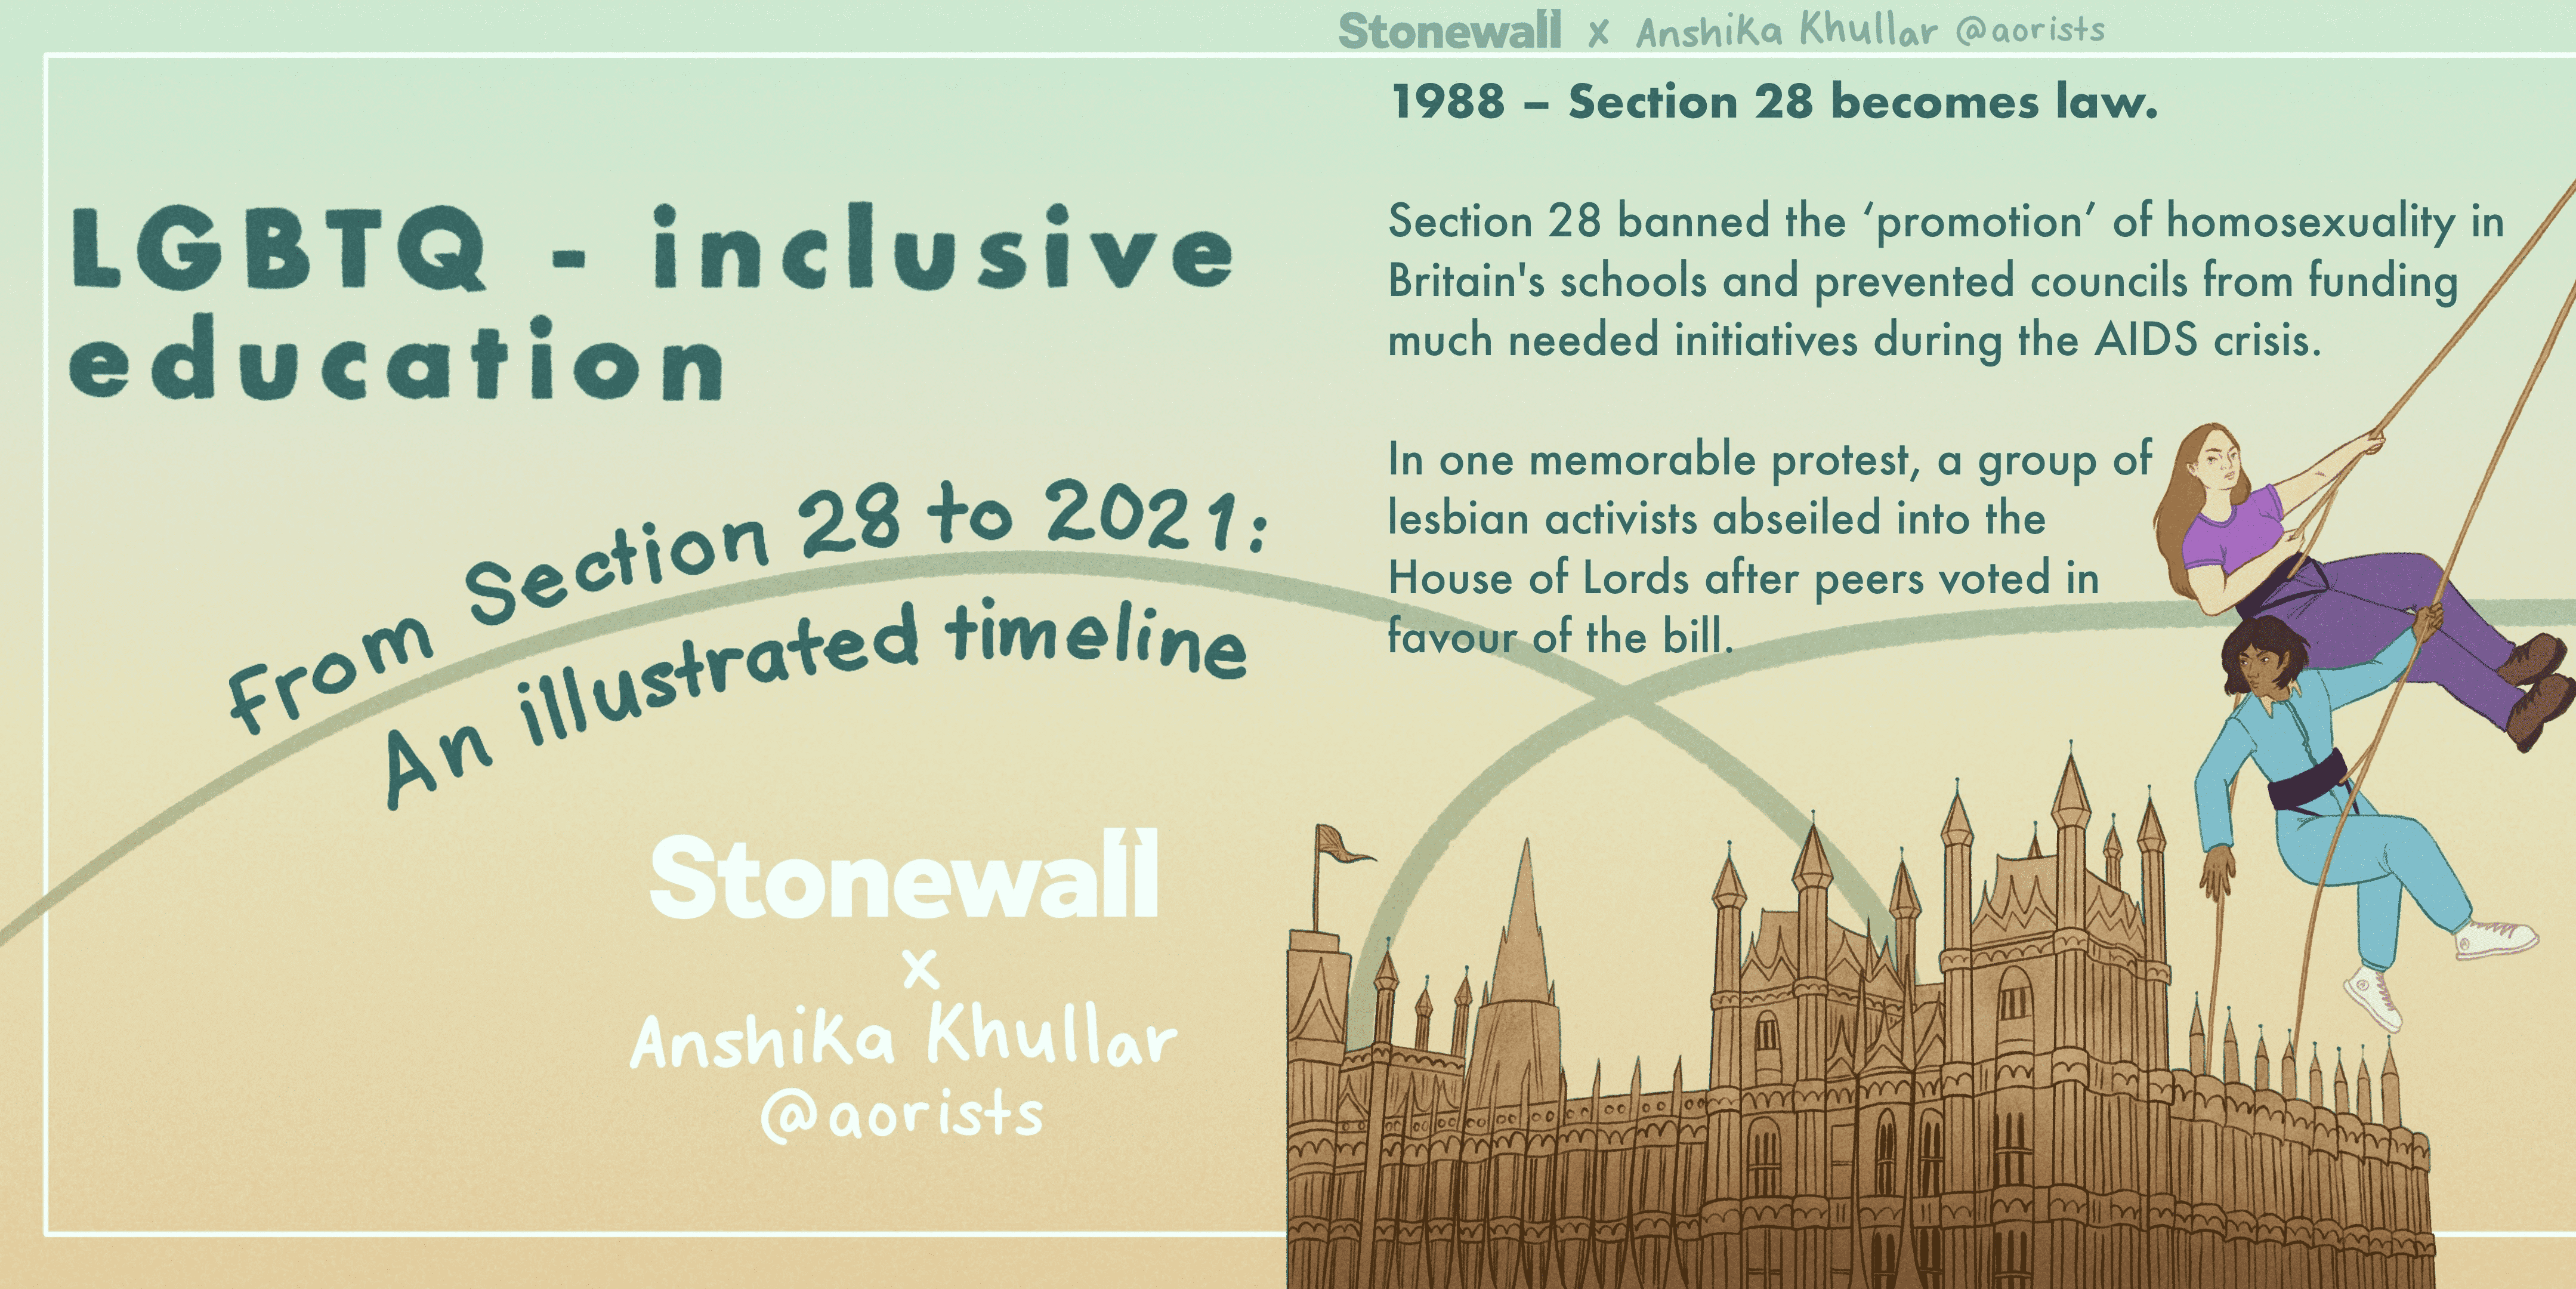 TITLE: LGBTQ-inclusive education. From Section 28 to 2021: An illustrated timeline. Stonewall logo and Anshika's insta handle/name on each slide. 1988 – Section 28 becomes law. Section 28 banned the 'promotion' of homosexuality in Britain's schools and prevented councils from funding much needed initiatives during the AIDS crisis. In one memorable protest, a group of lesbian activists abseiled into the House of Lords after peers voted in favour of the bill. Illustration of: women abseiling down from the top of the slide, as if into the House of Lords (represented at the bottom of the slide)